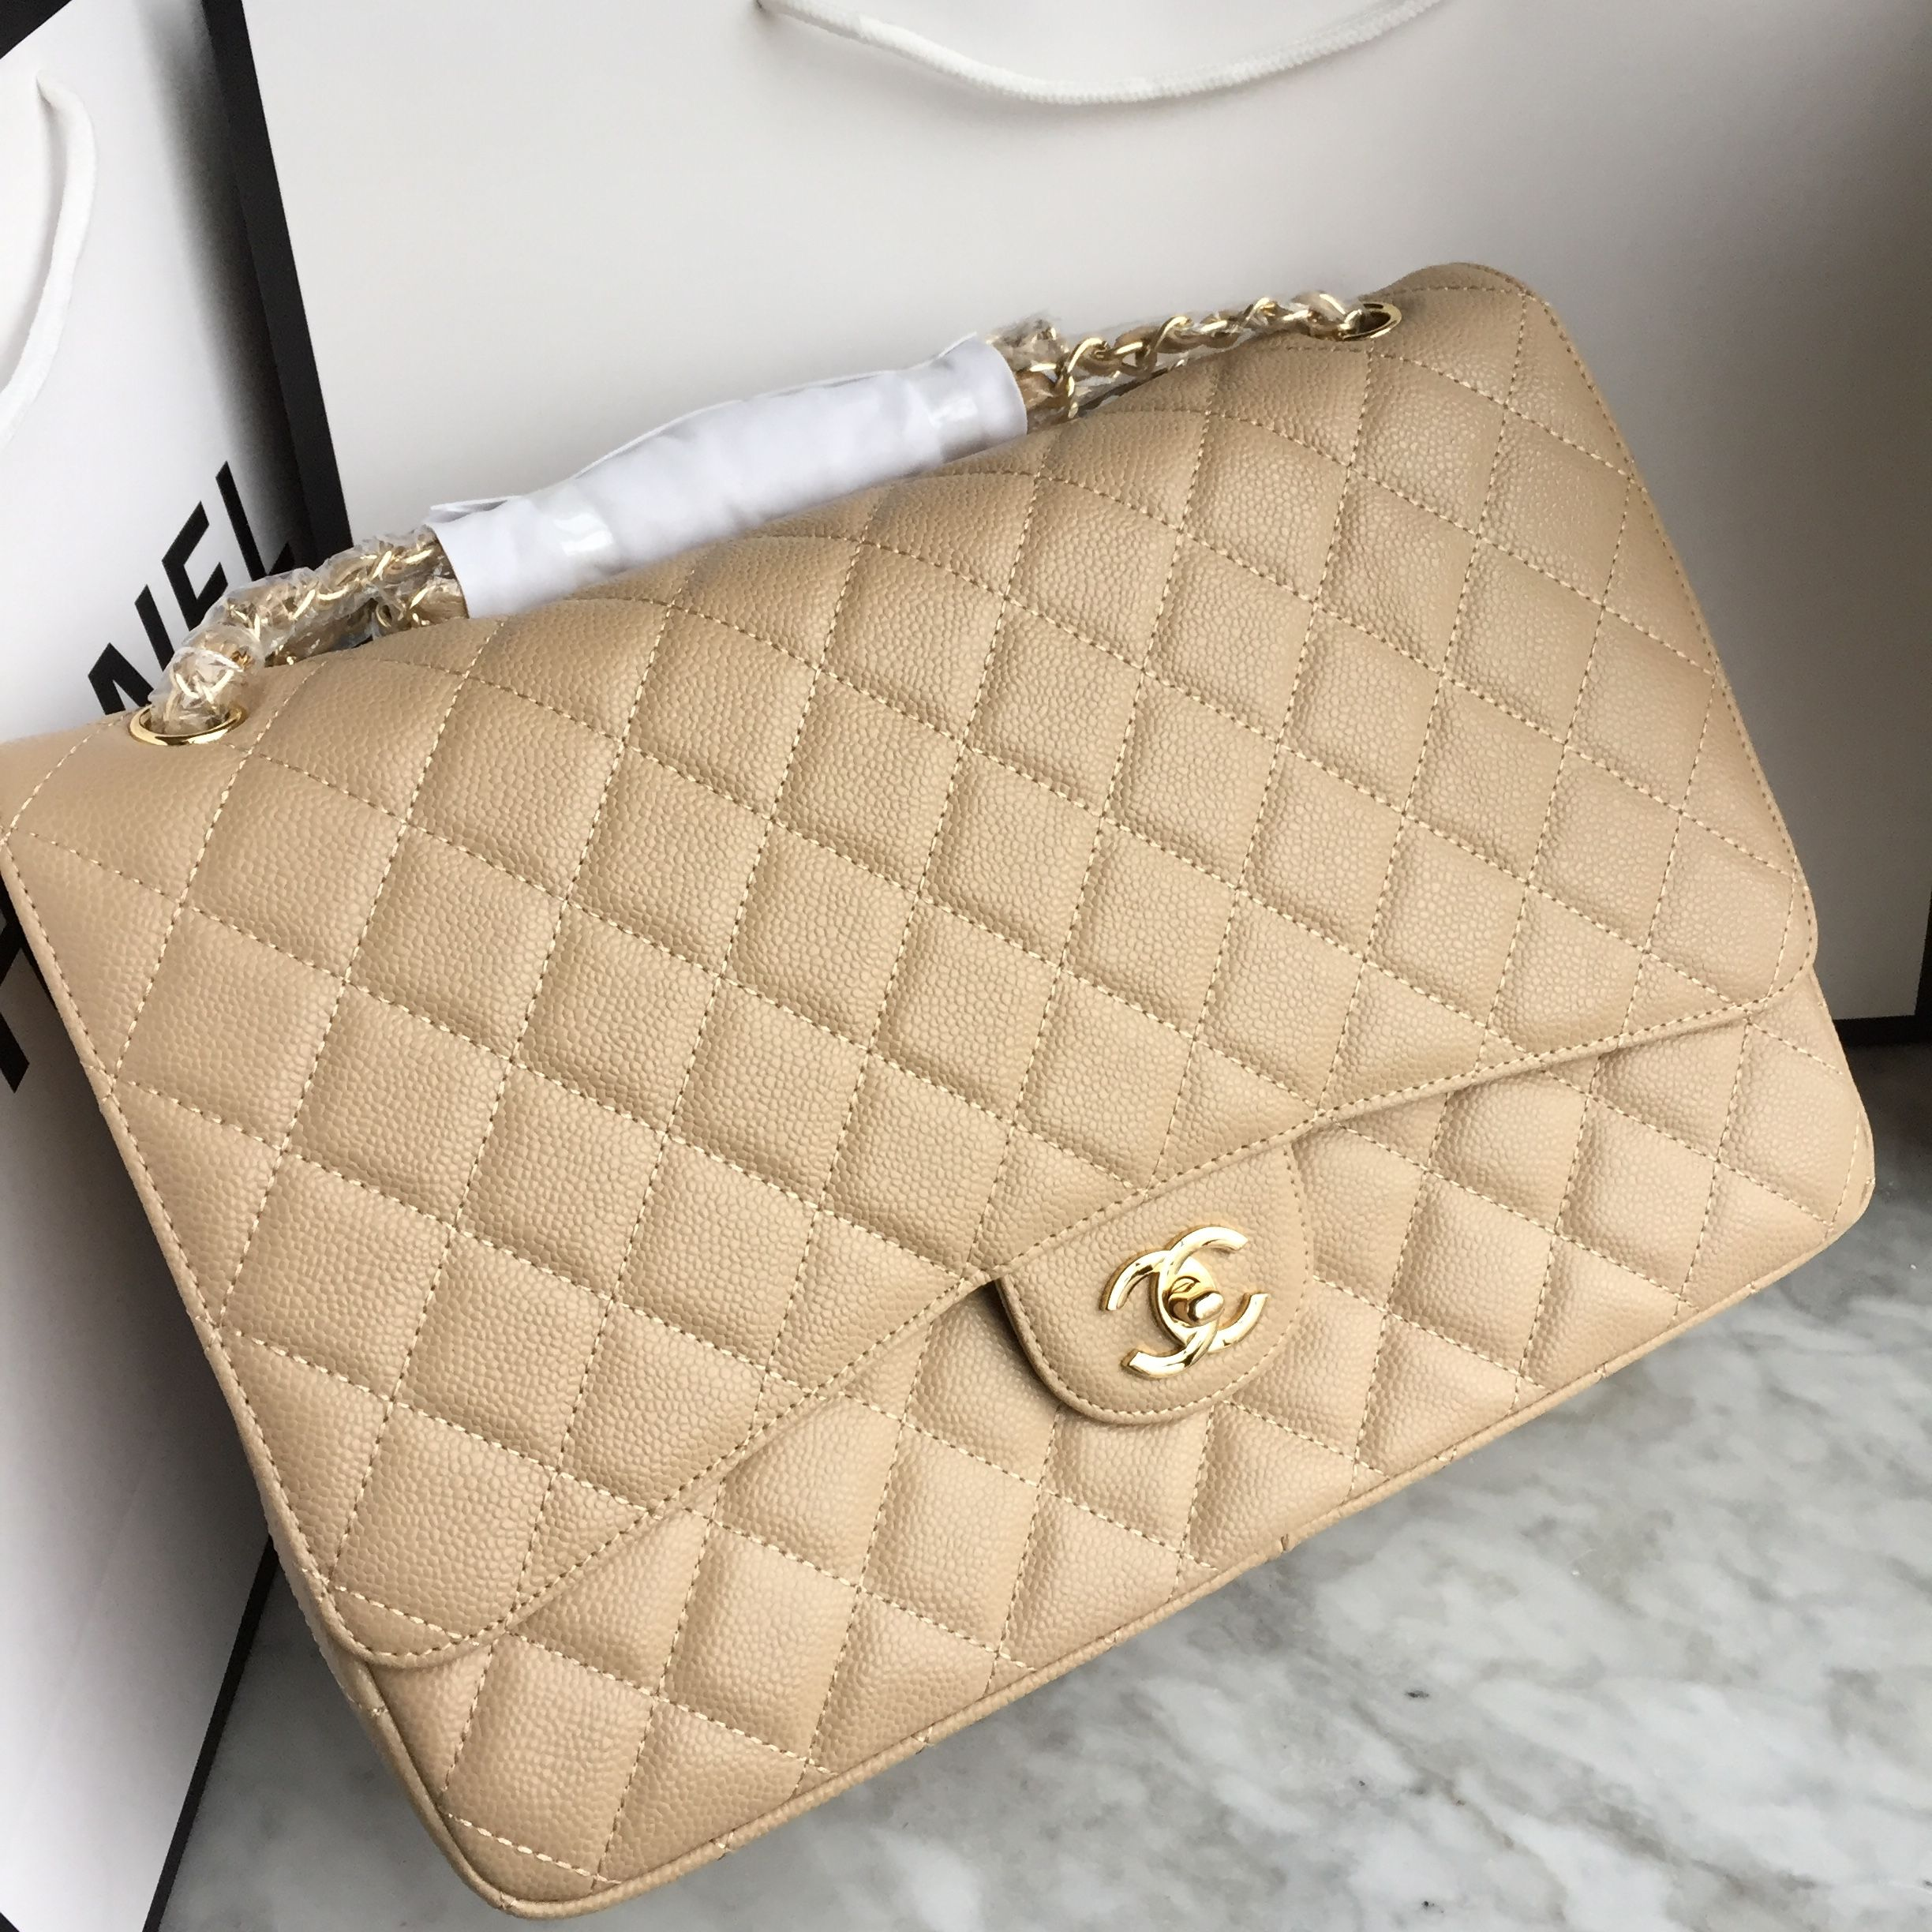 48235de72ad6 Chanel woman chain flap bag 2.55 maxi caviar beige | Luxury in 2019 ...